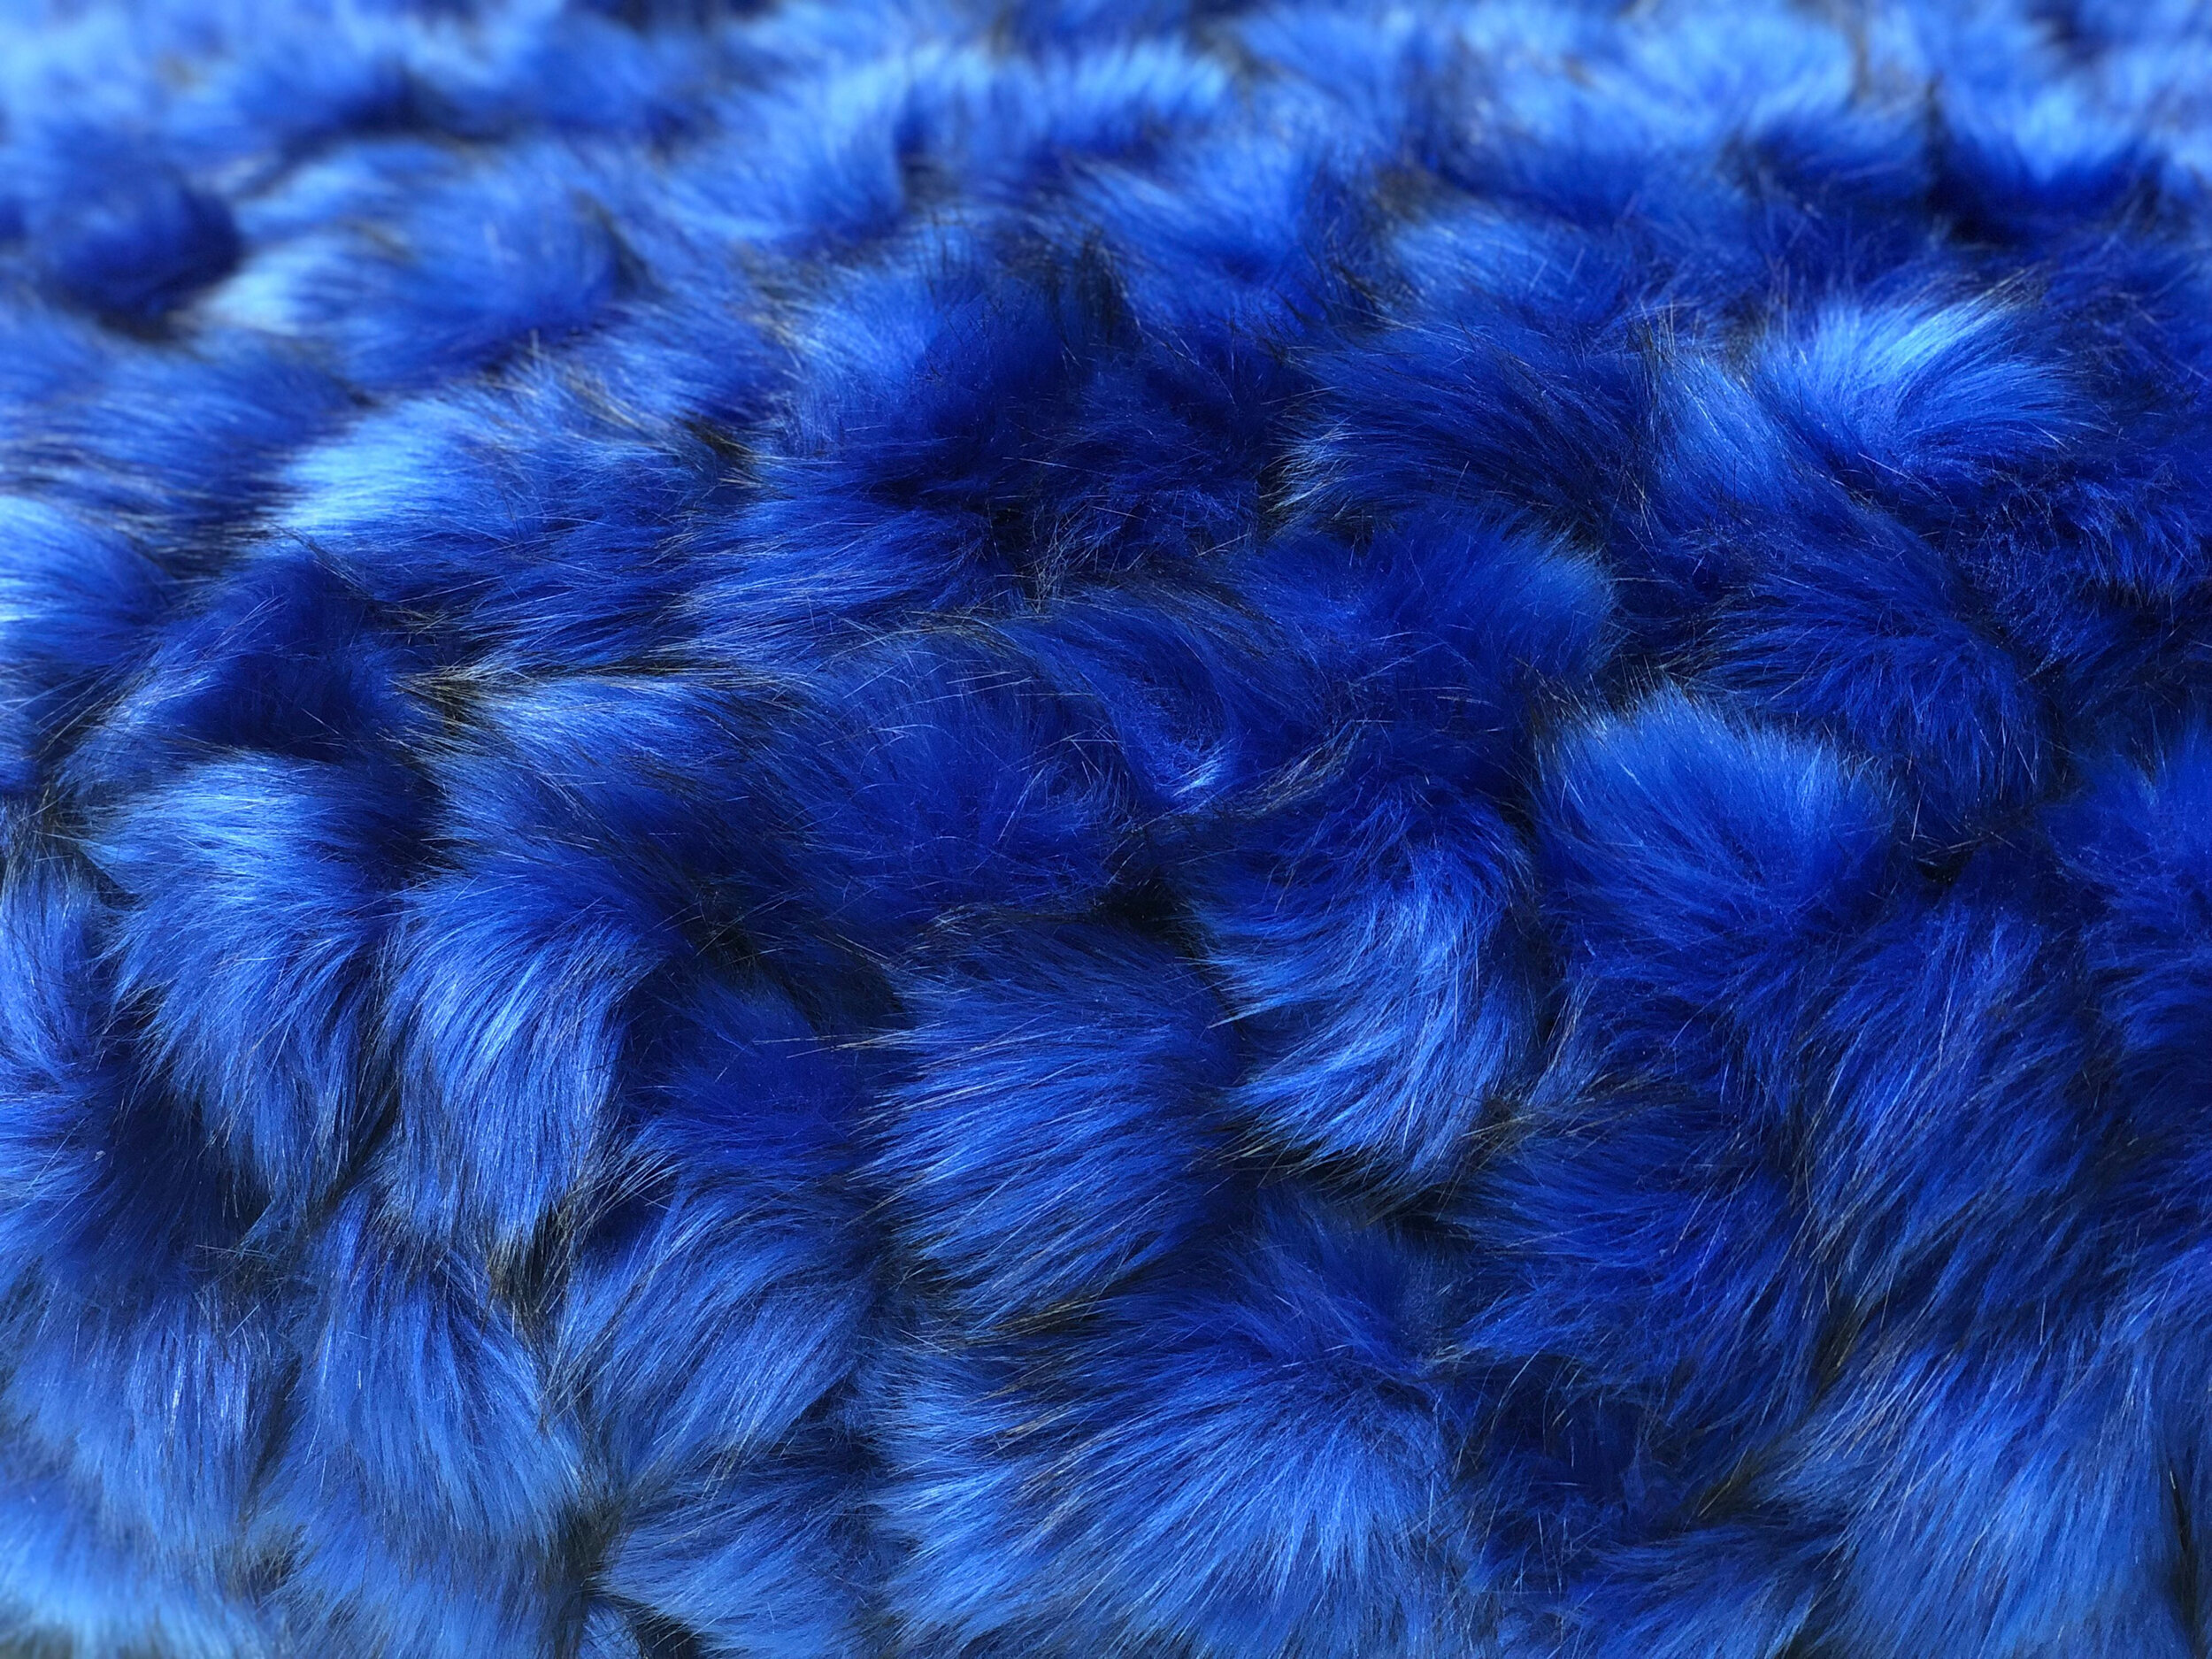 """Ryan Gander ,  Het Spel (My neotonic contribution to Modernism) , 2019,  An enlarged and inflated version of George Vantongerloo's  Komposition Aus Dem Ovoid (Composition from the ovoid)  (1918), covered in blue, artificial fur balls , 144"""" x 80 ½"""" x 75"""" (365,8 x 204,5 x 190,5 cm) (Détail)"""